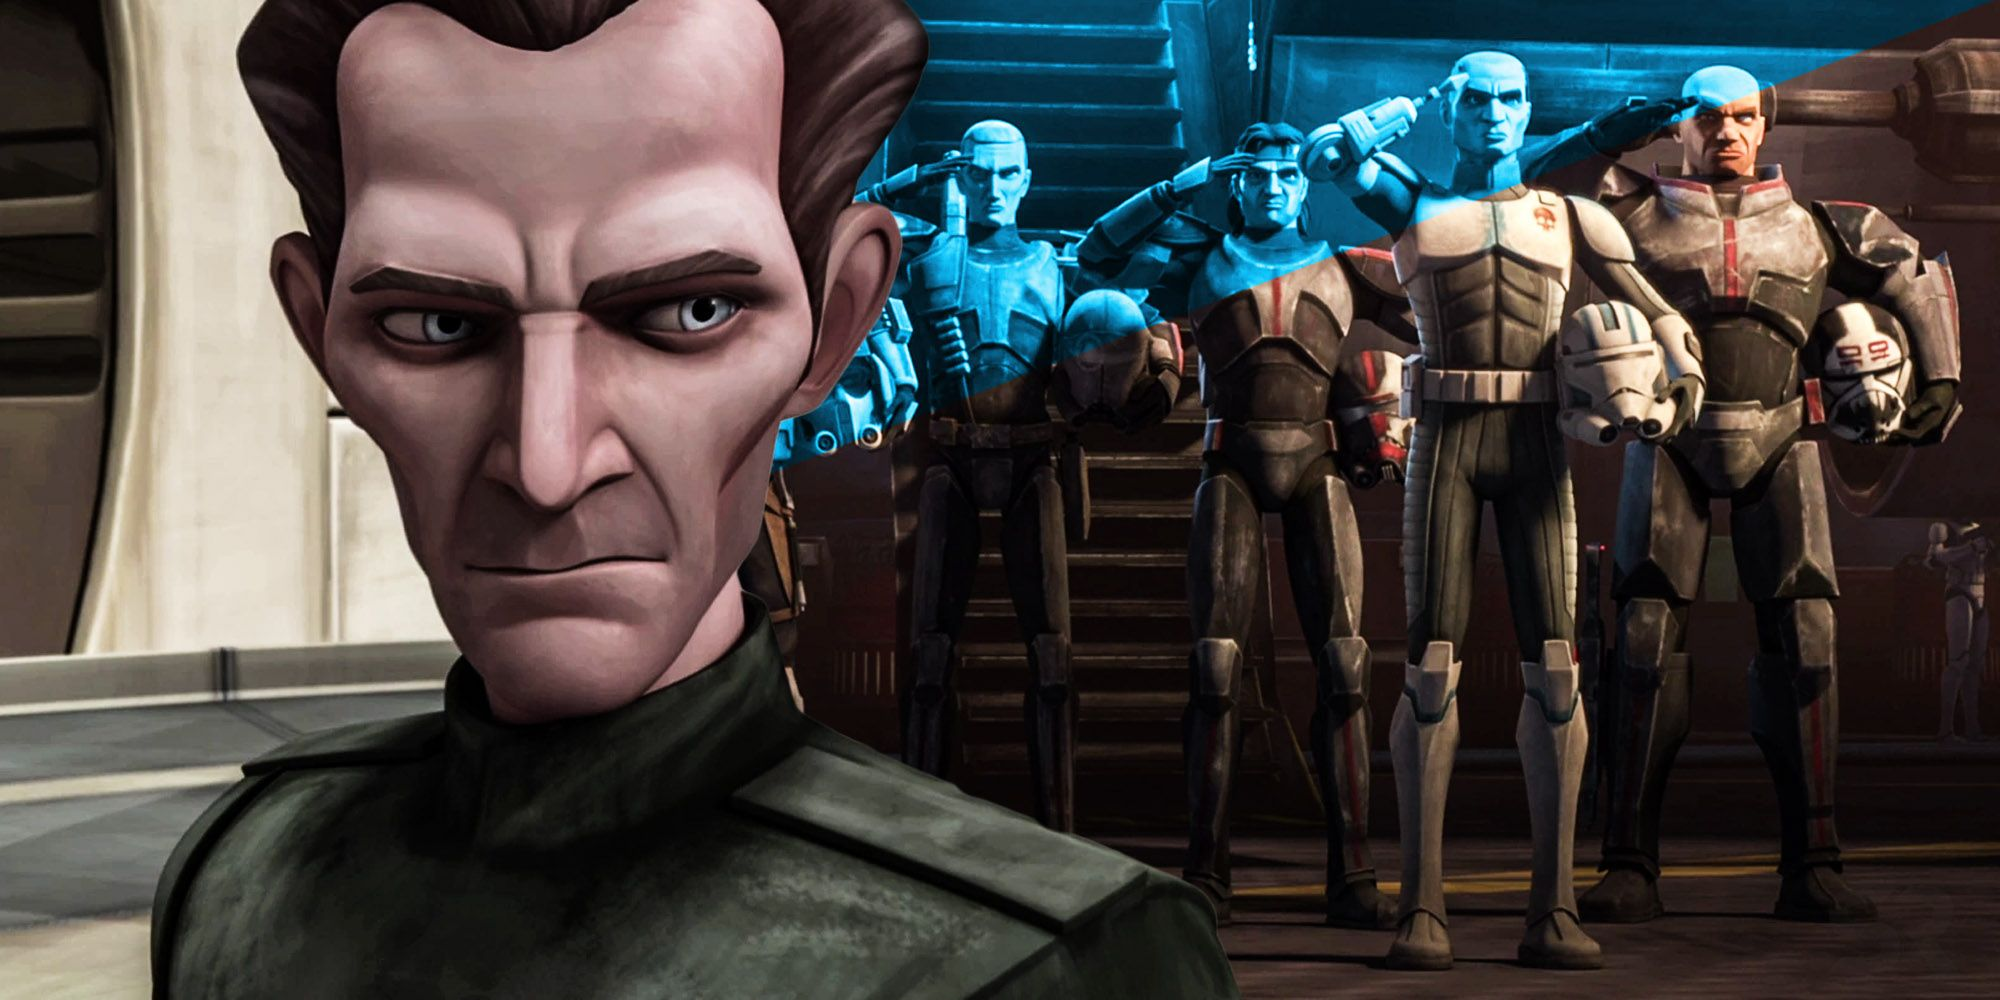 You have to watch episodes of clone wars before a bad series